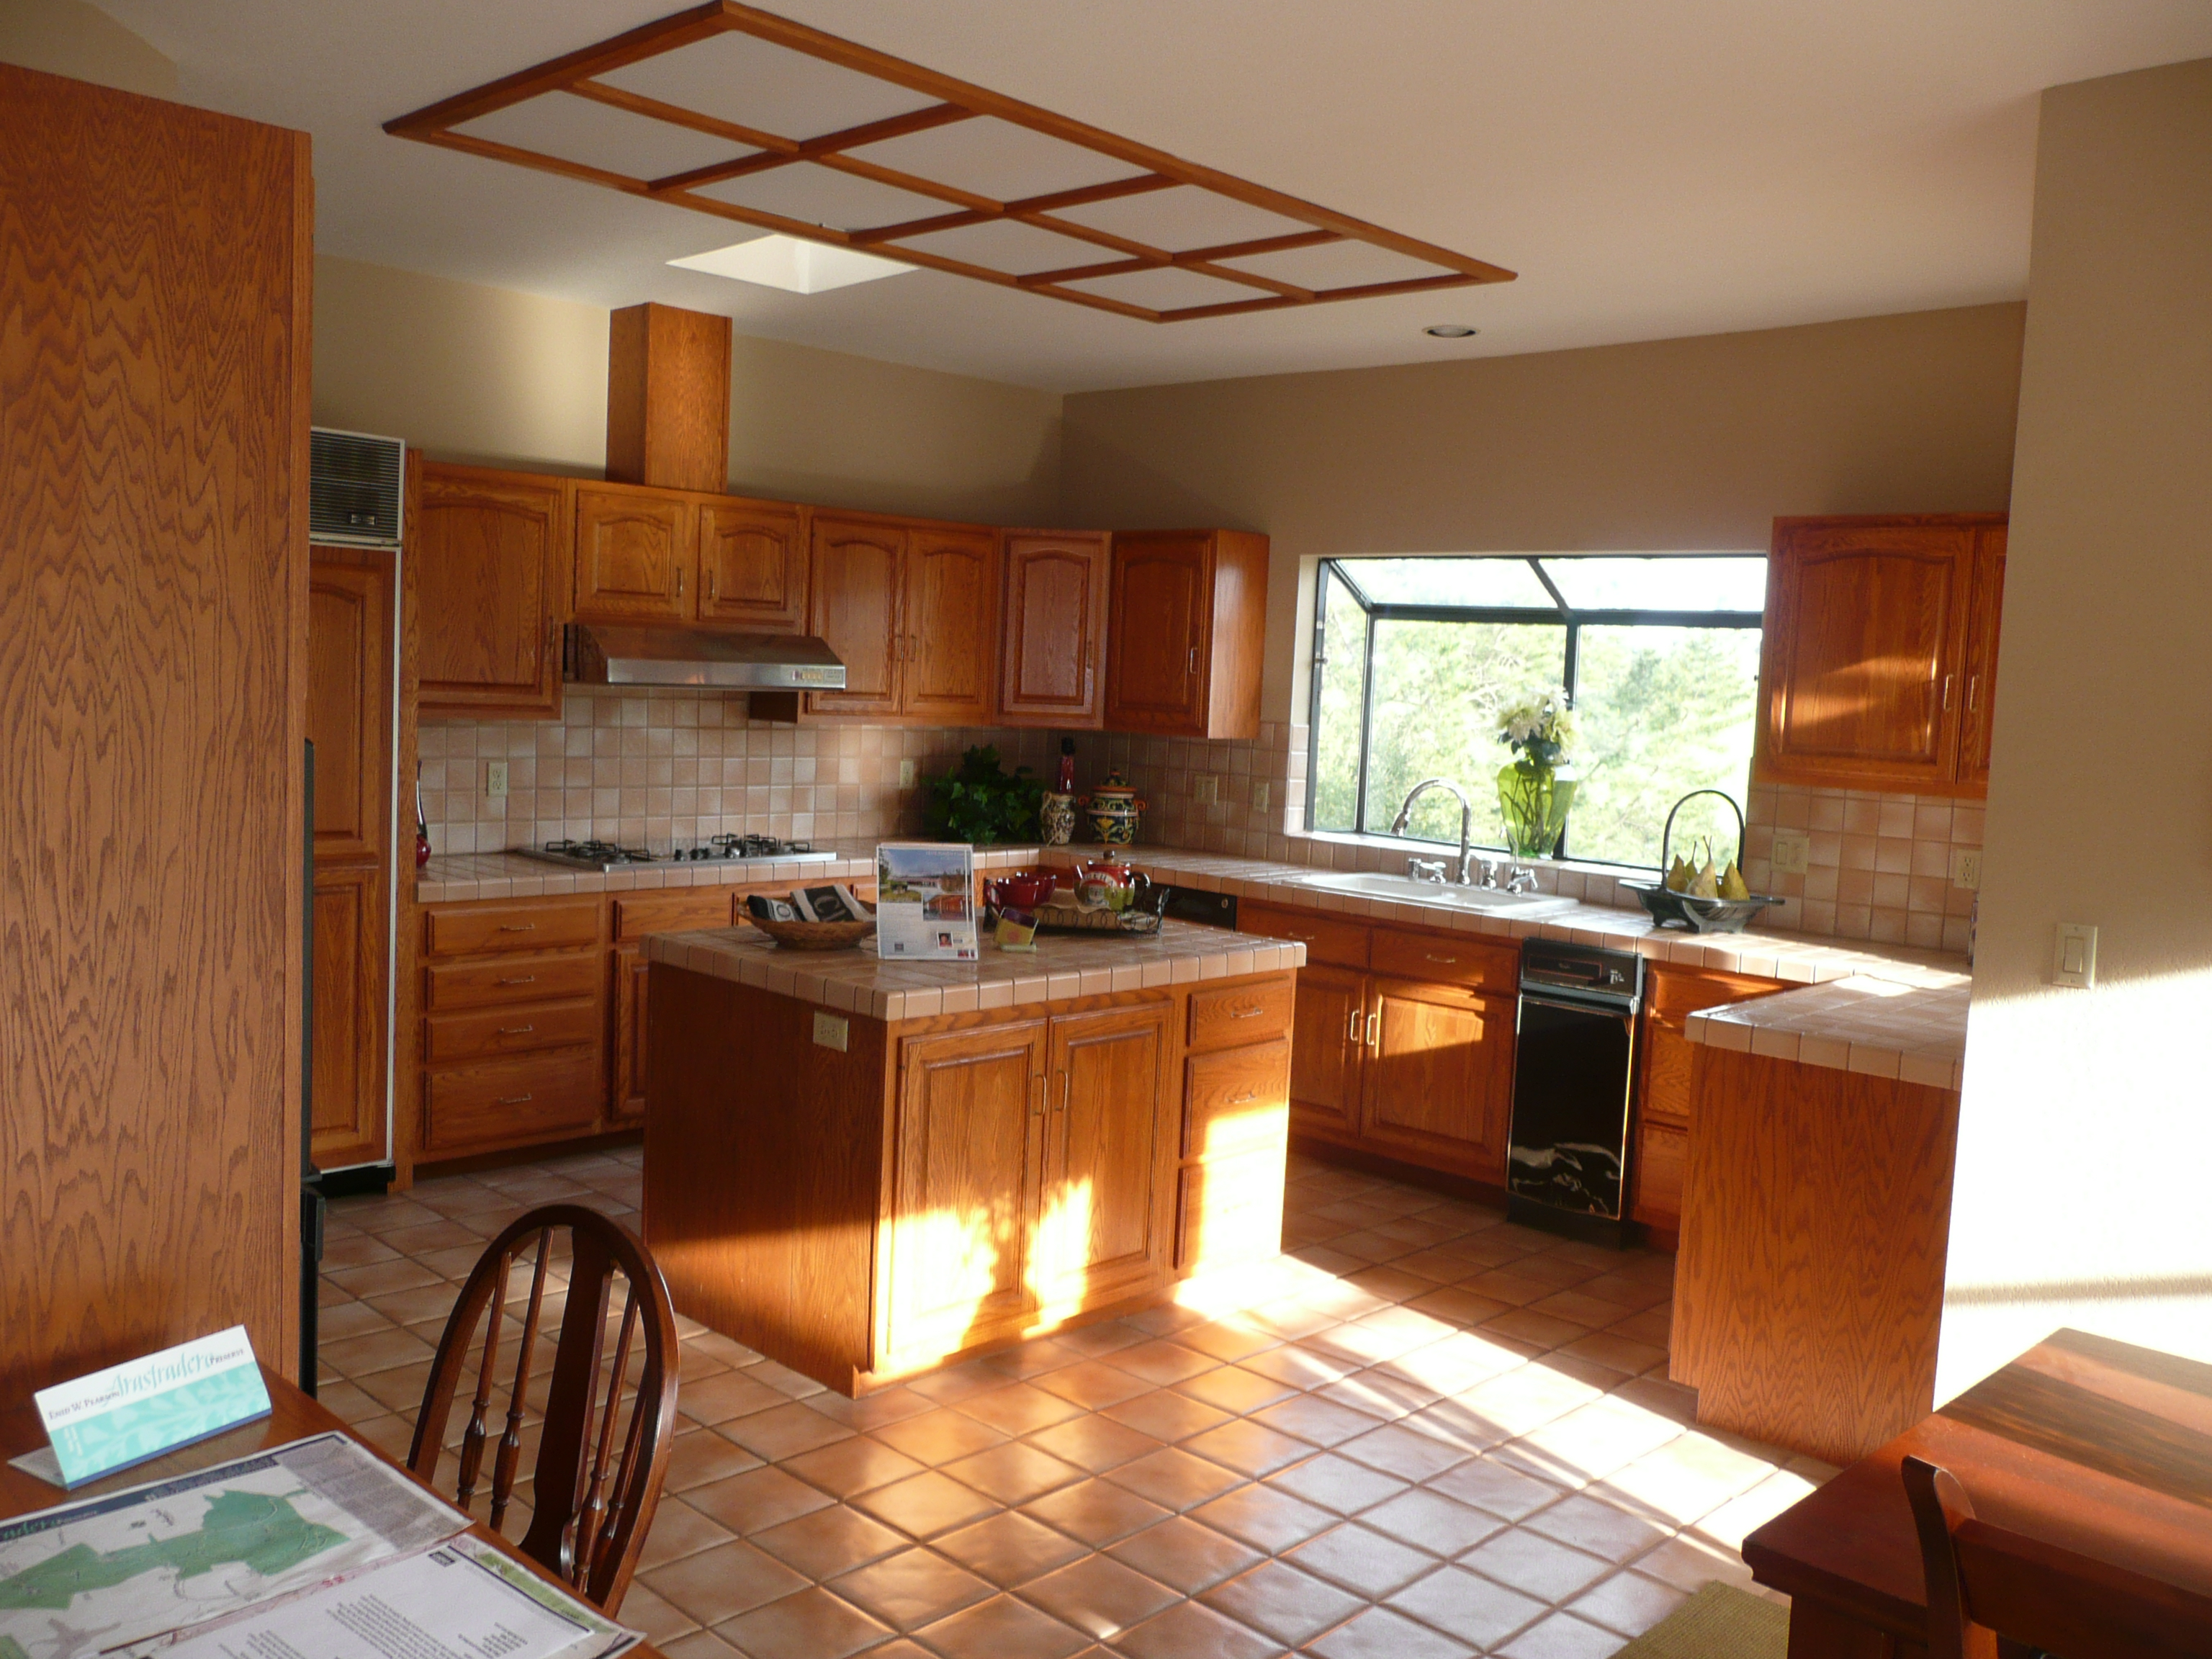 Kitchen With Feng Shui Color And Sunlight